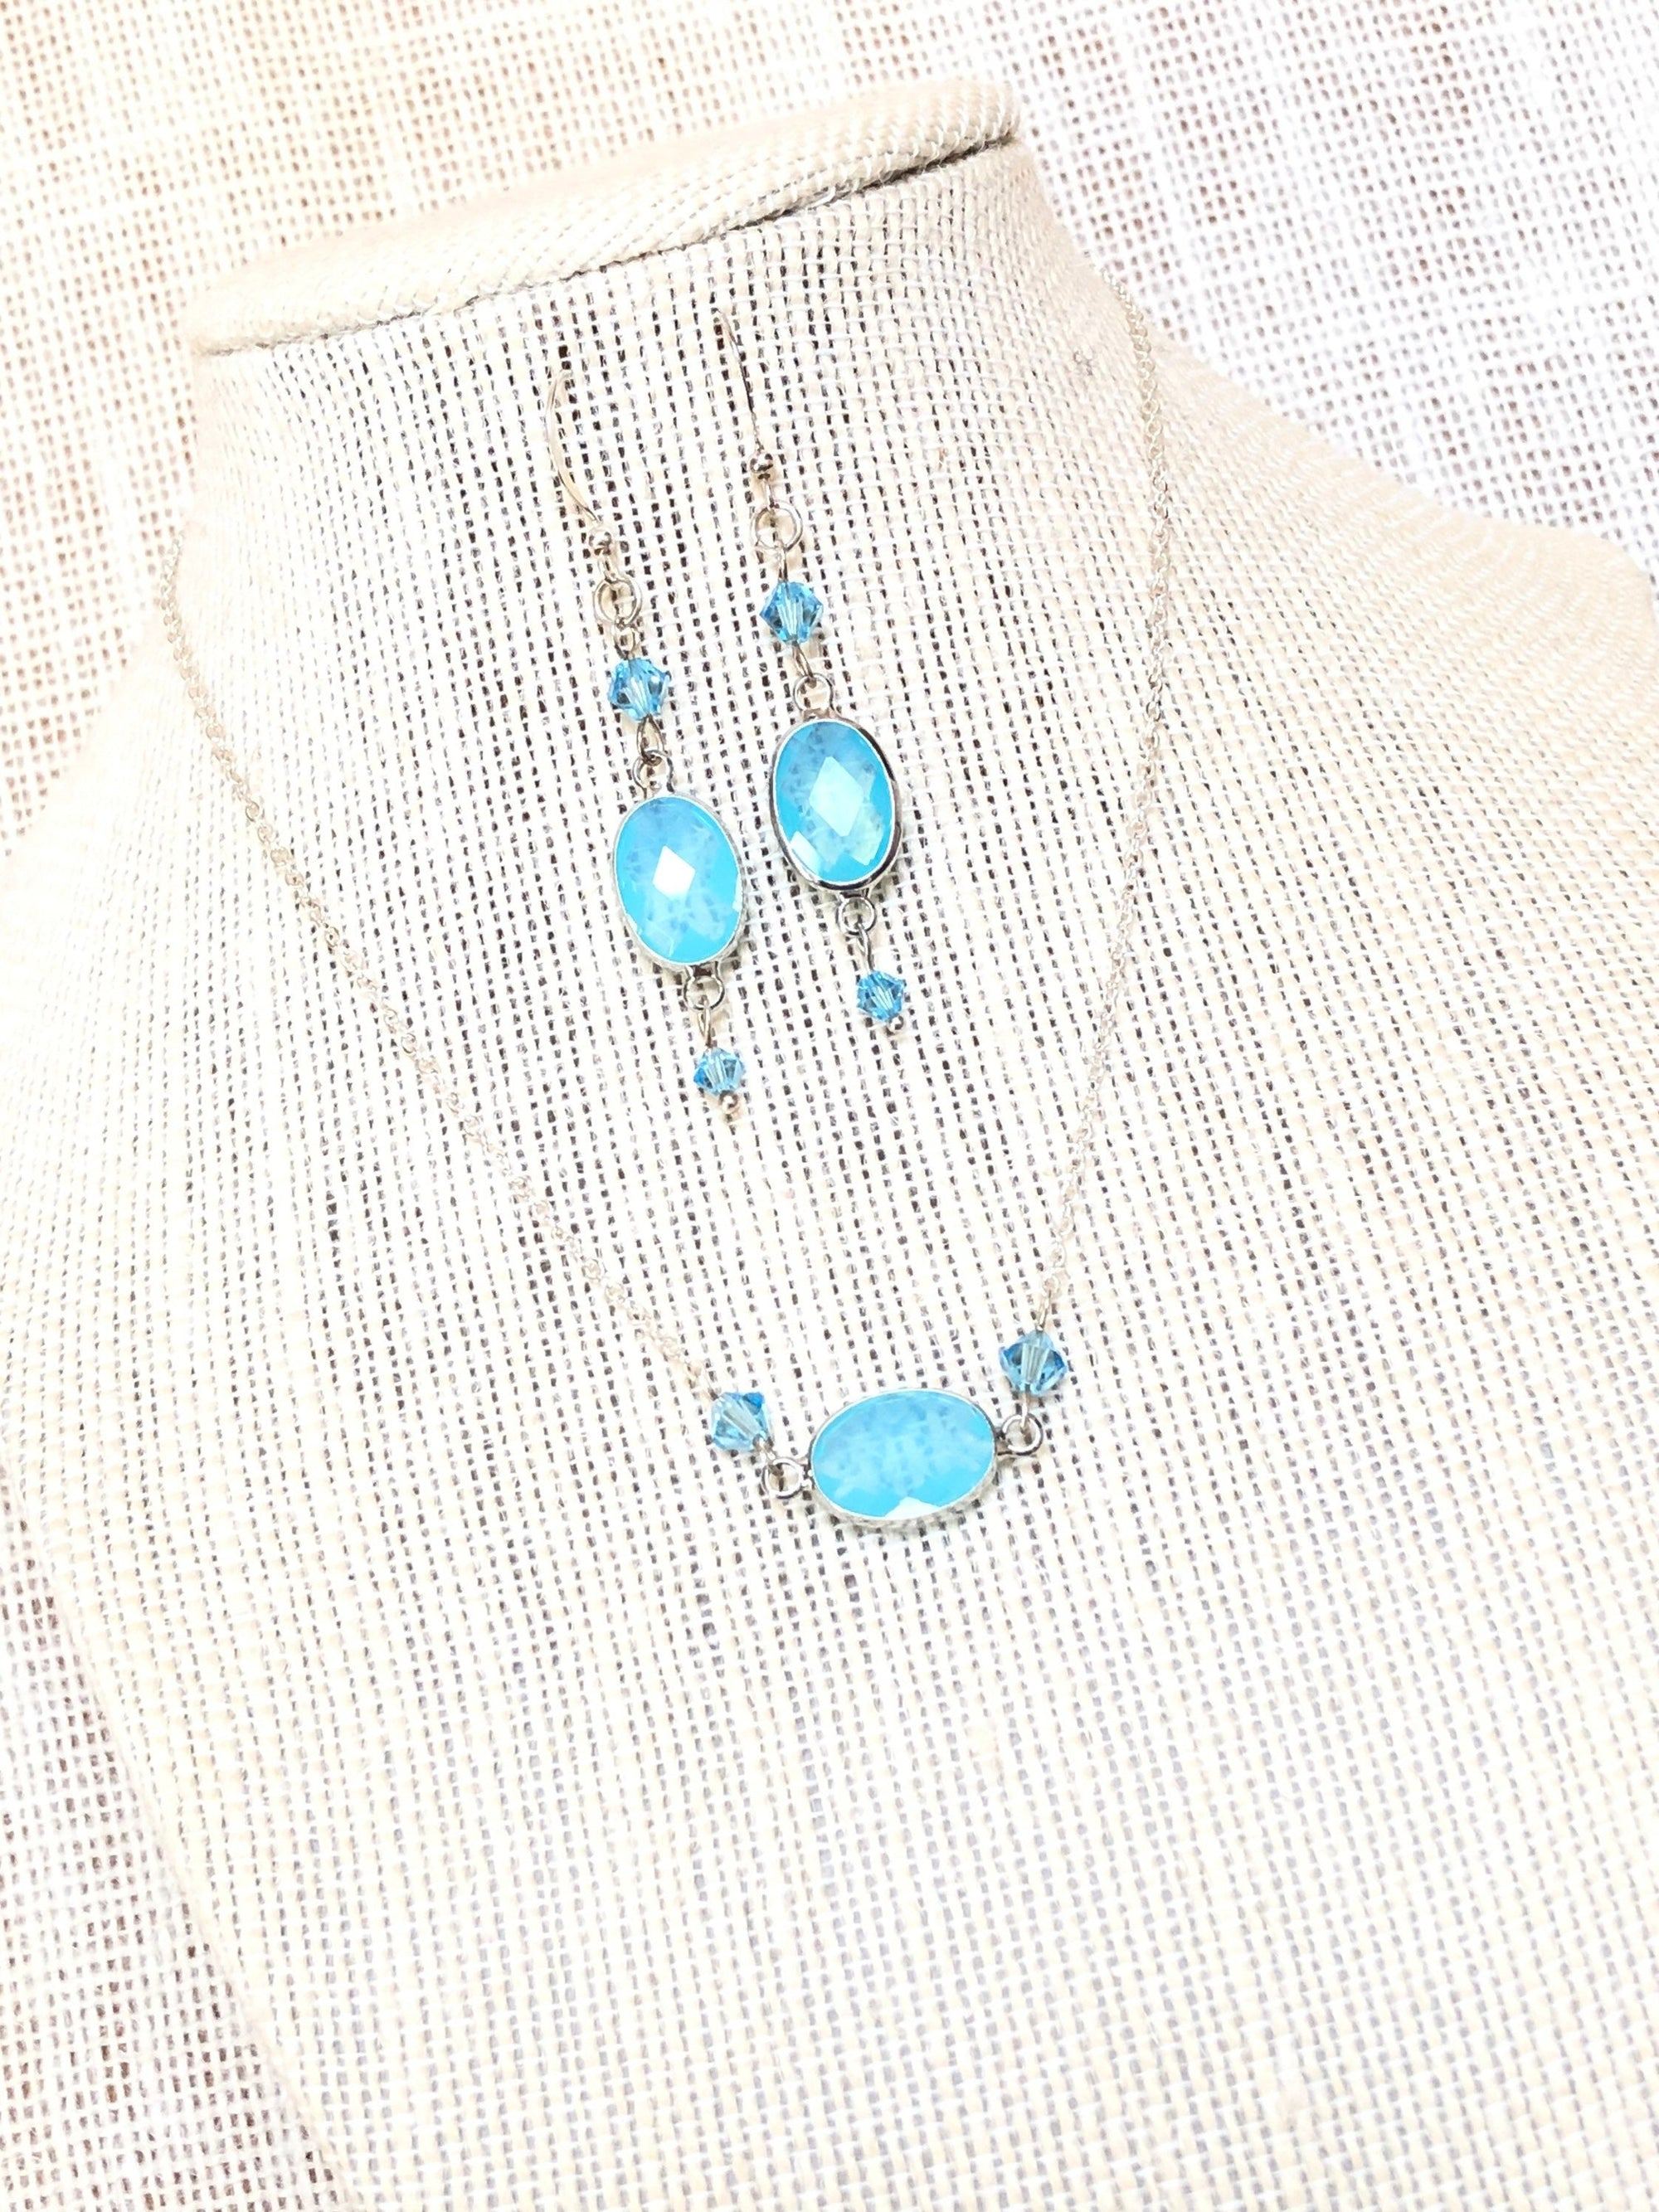 Aquamarine crystal necklace and earrings set, mom birthday gift, March Birthstone Necklace gift for girlfriend, best selling items, trending